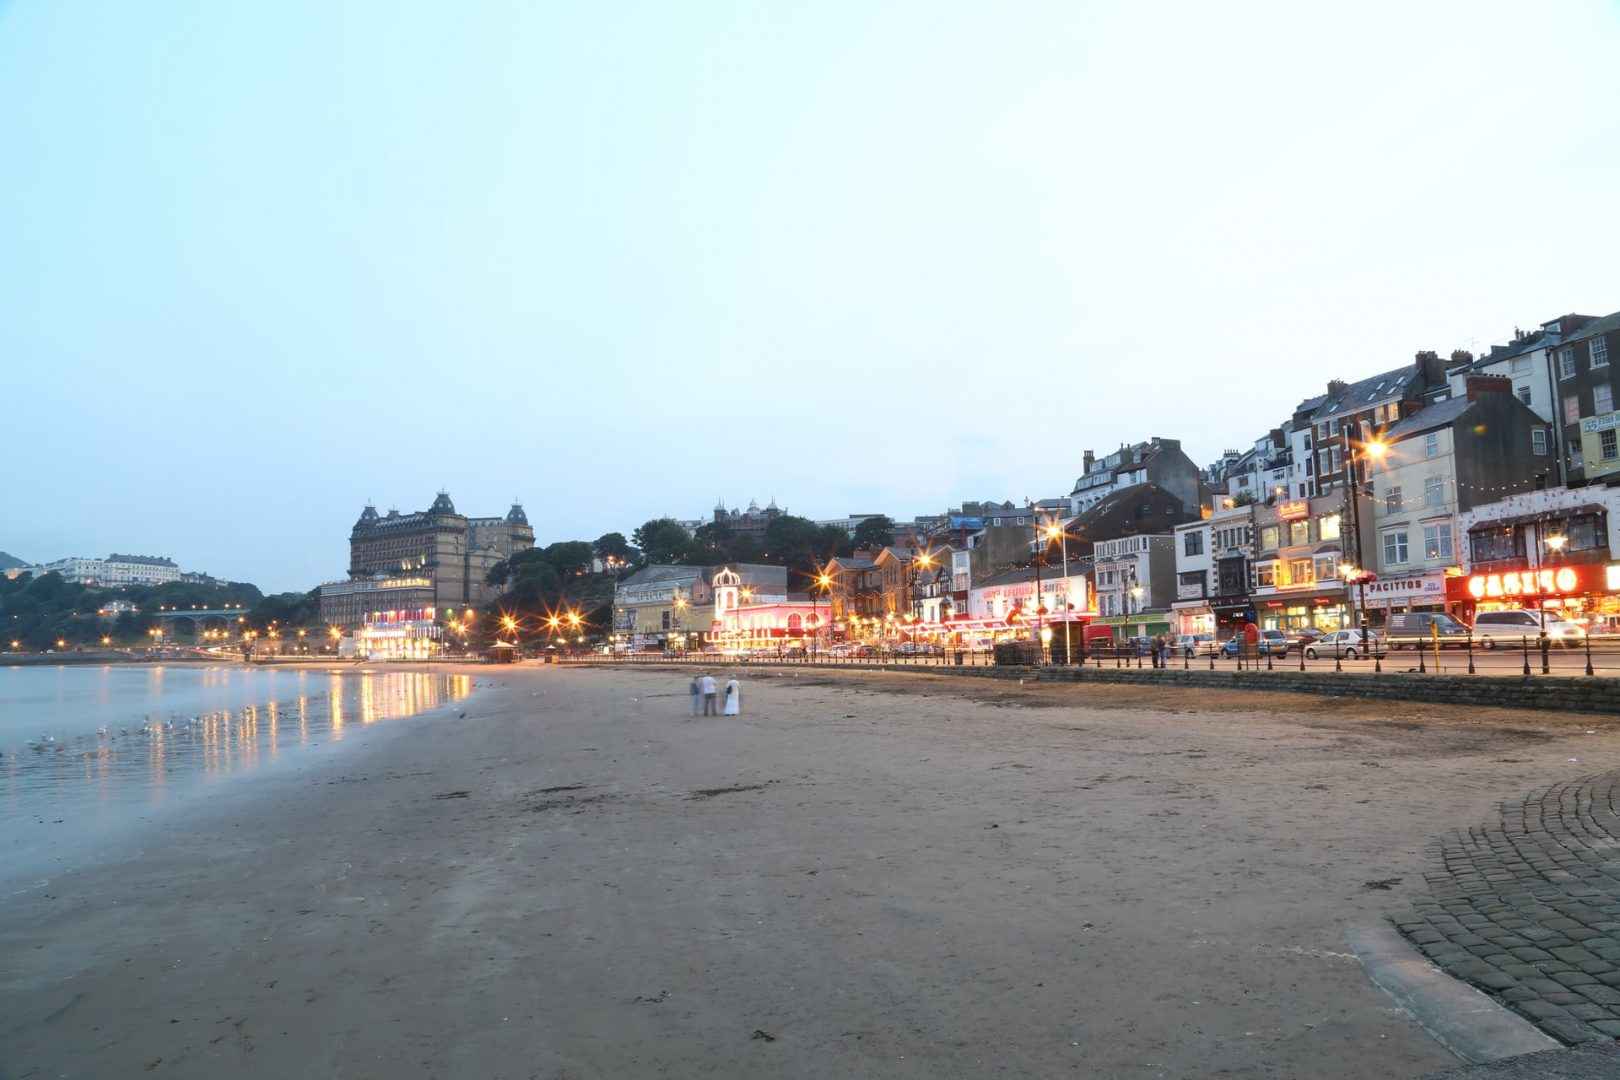 Image showing various building types along the Scarborough seafront